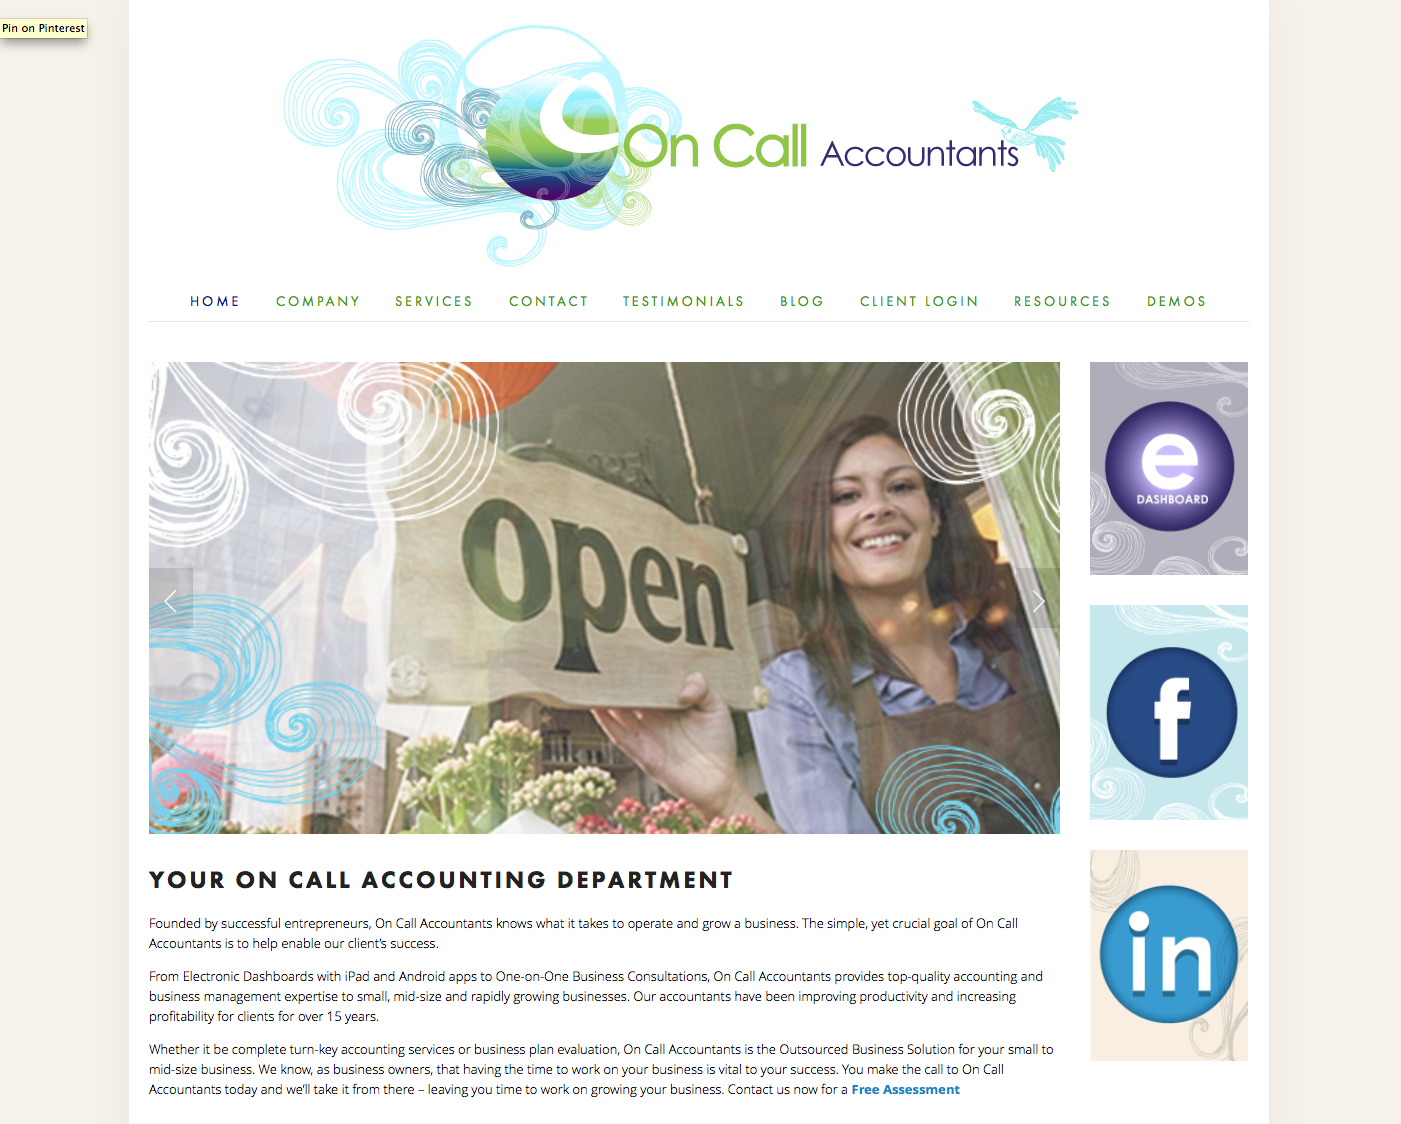 On Call Accountants Virginia Beach   Owner Maria Reich Needed to upgrade their old brand look to fit her new business model and location by the beach. Her problem was that she could not change the current logo so we added a secondary illustrative graphic element to help narrate and navigate the brand through out her site.